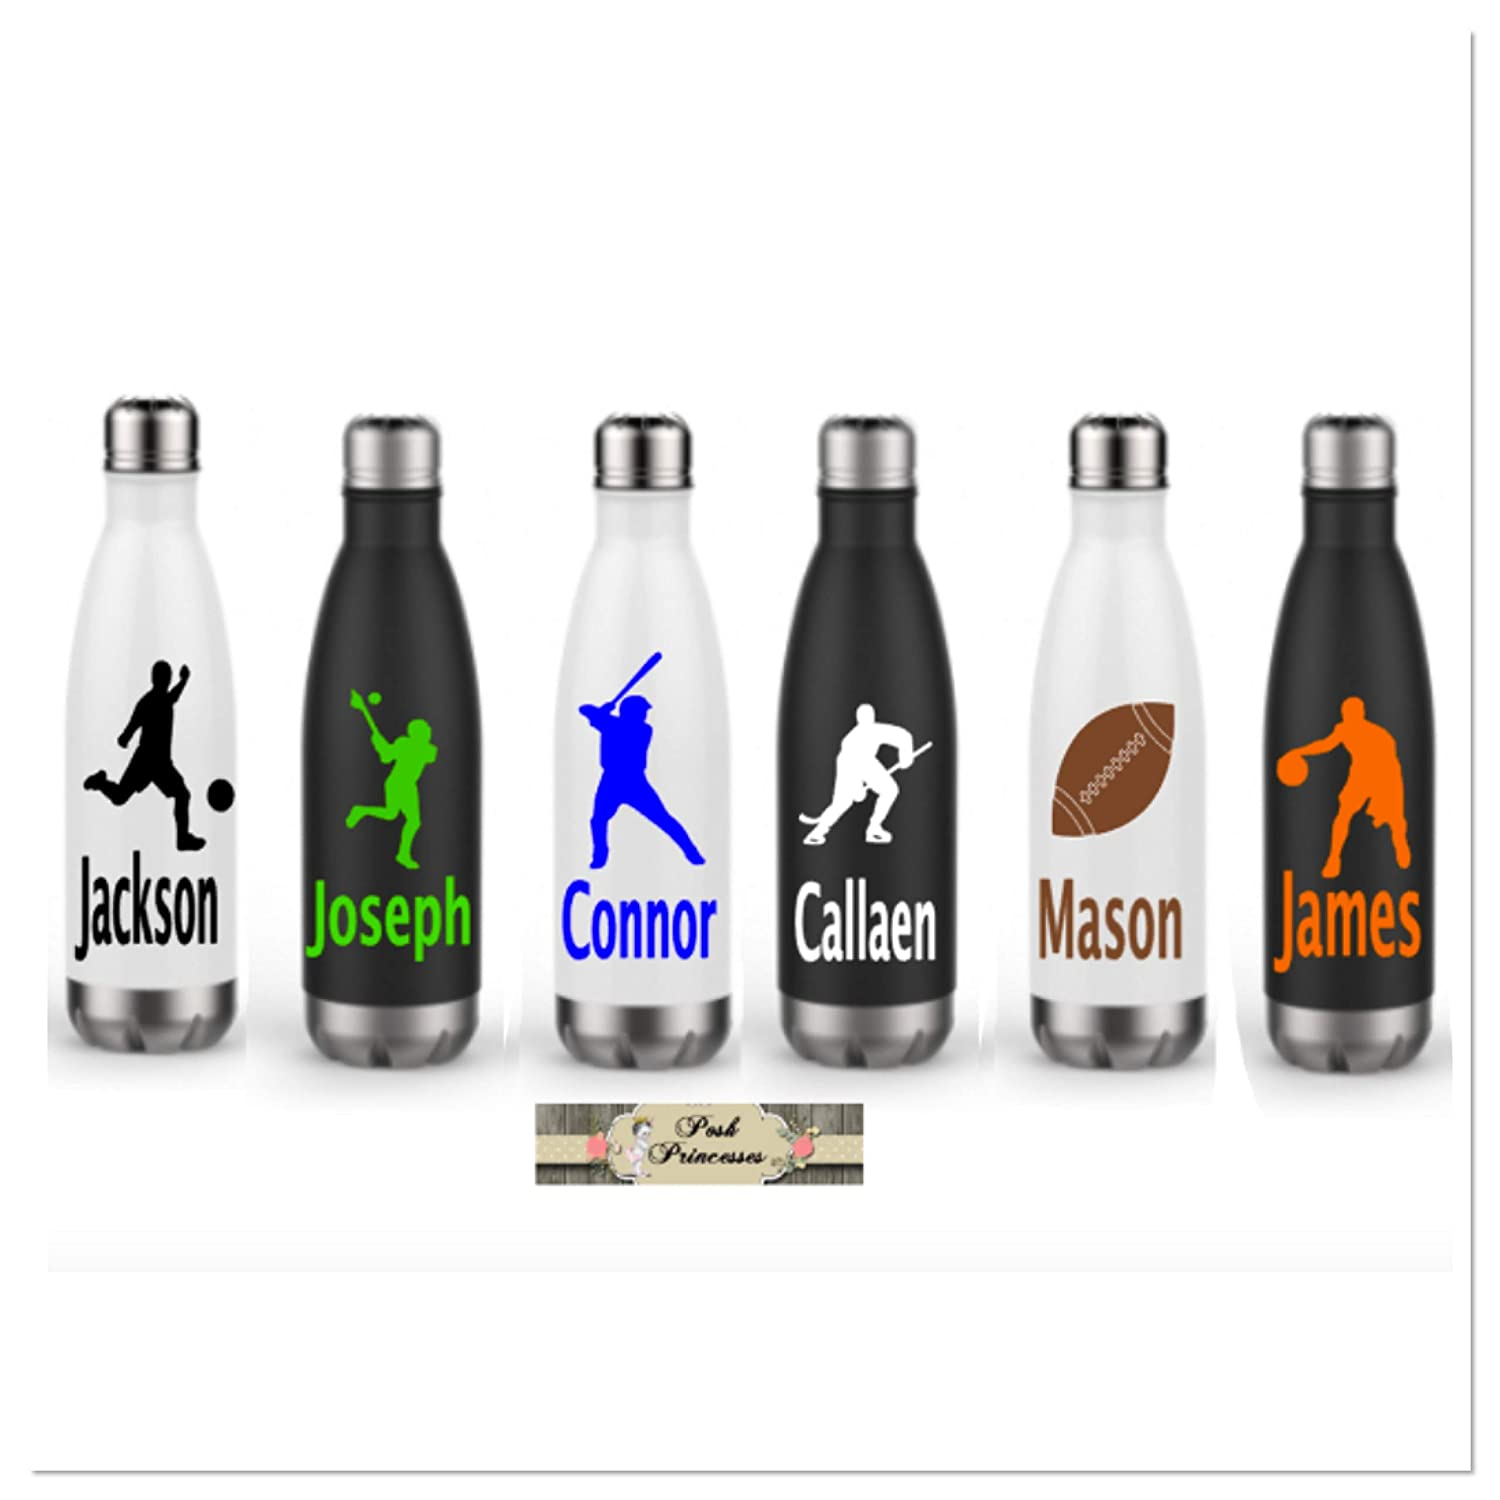 Stainless Steel Sports Water Bottle, ONE 17oz Insulated Water Bottle, Personalized Any Name Or Color, Basketball, Baseball, Soccer, LaCrosse, Hockey, Football